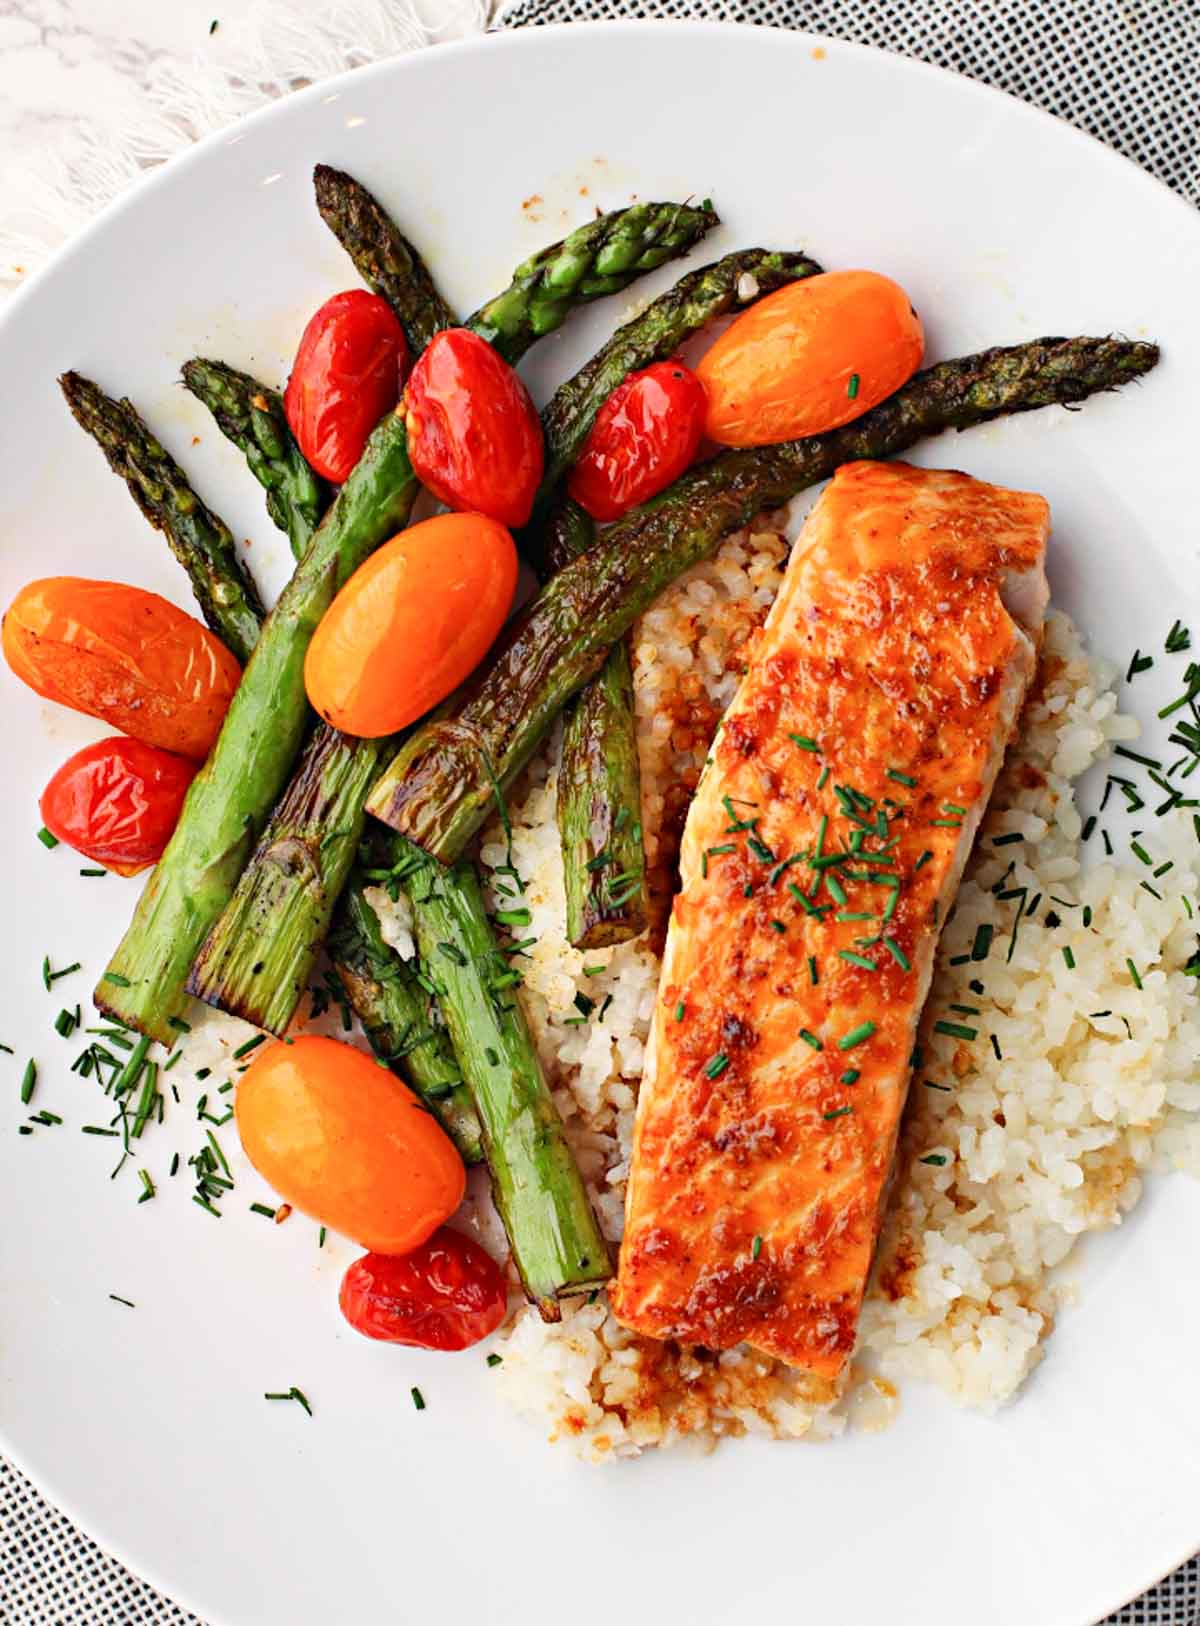 Salmon fillet glazed with mirin sweet cooking wine served over rice and sauteed asparagus and red and orange cherry tomatoes